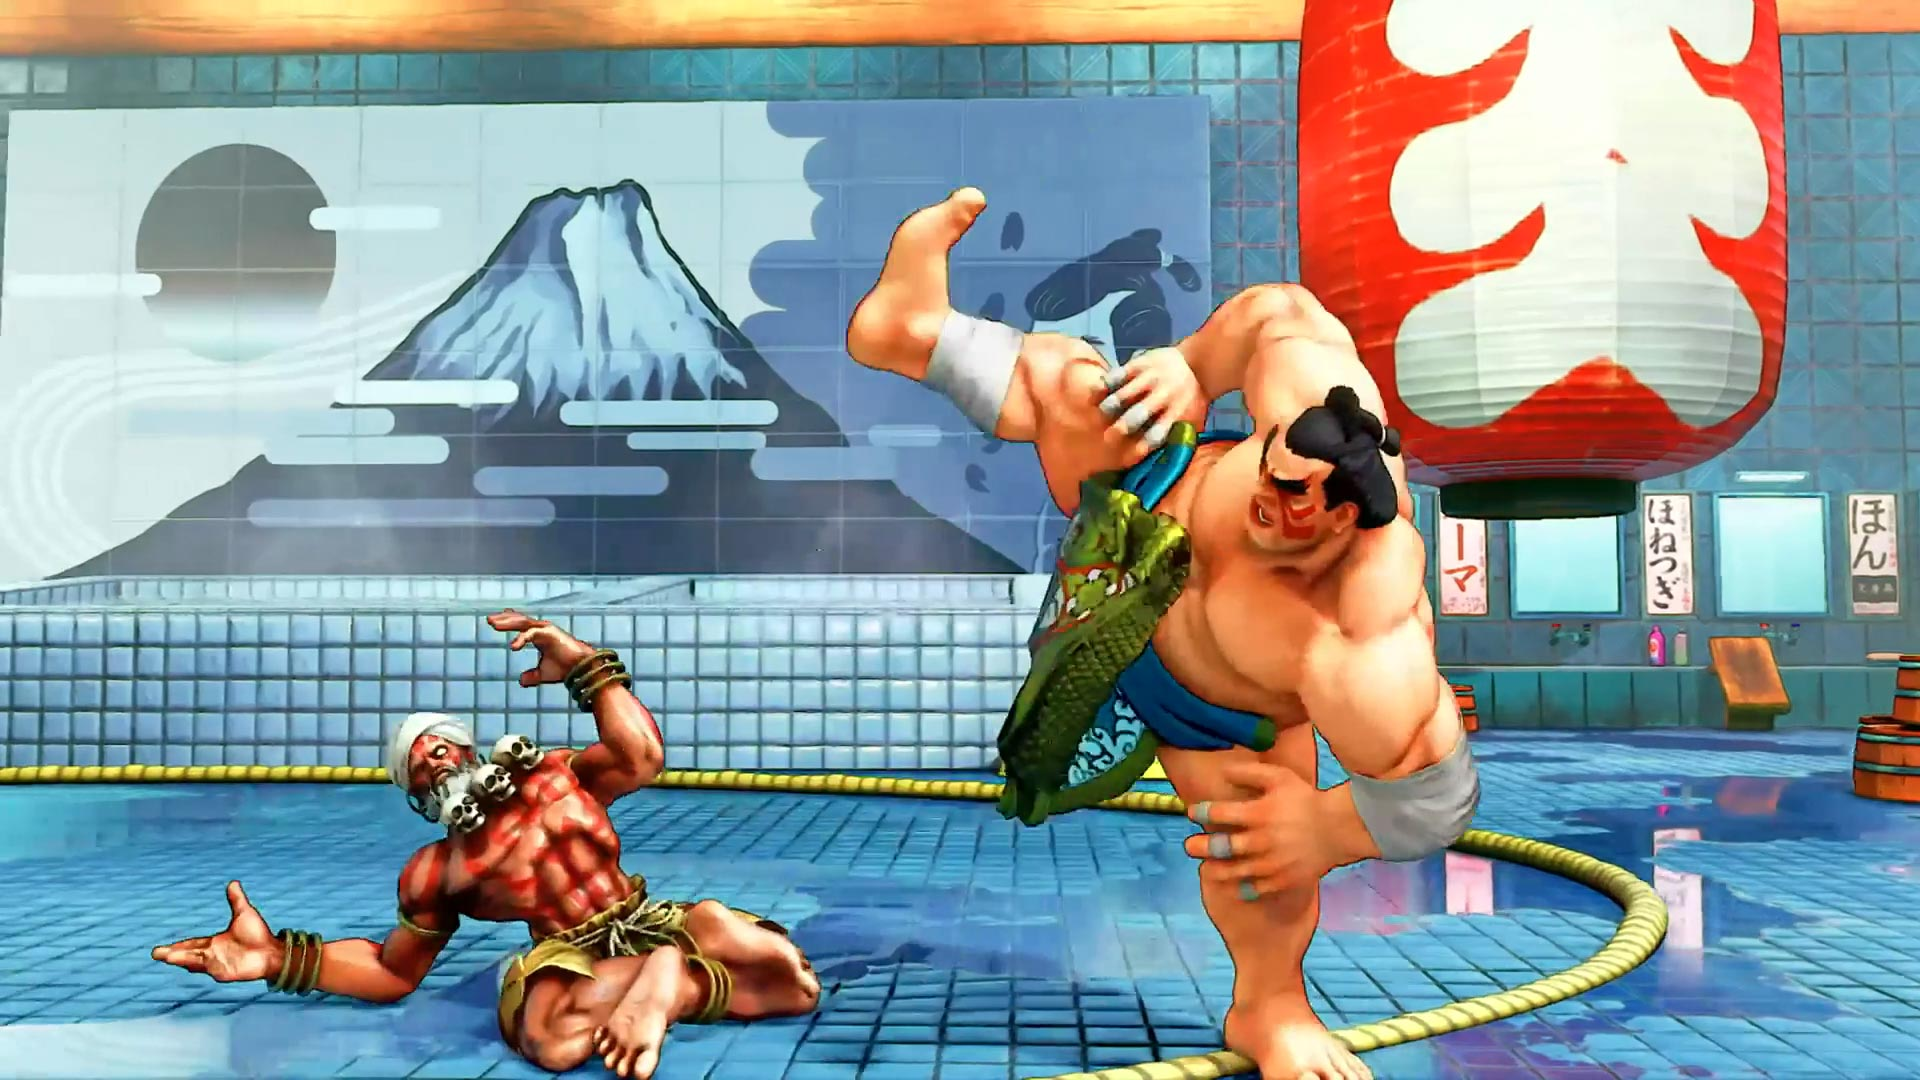 Street Fighter 5 leaked gallery of E. Honda, Lucia and Poison 12 out of 35 image gallery